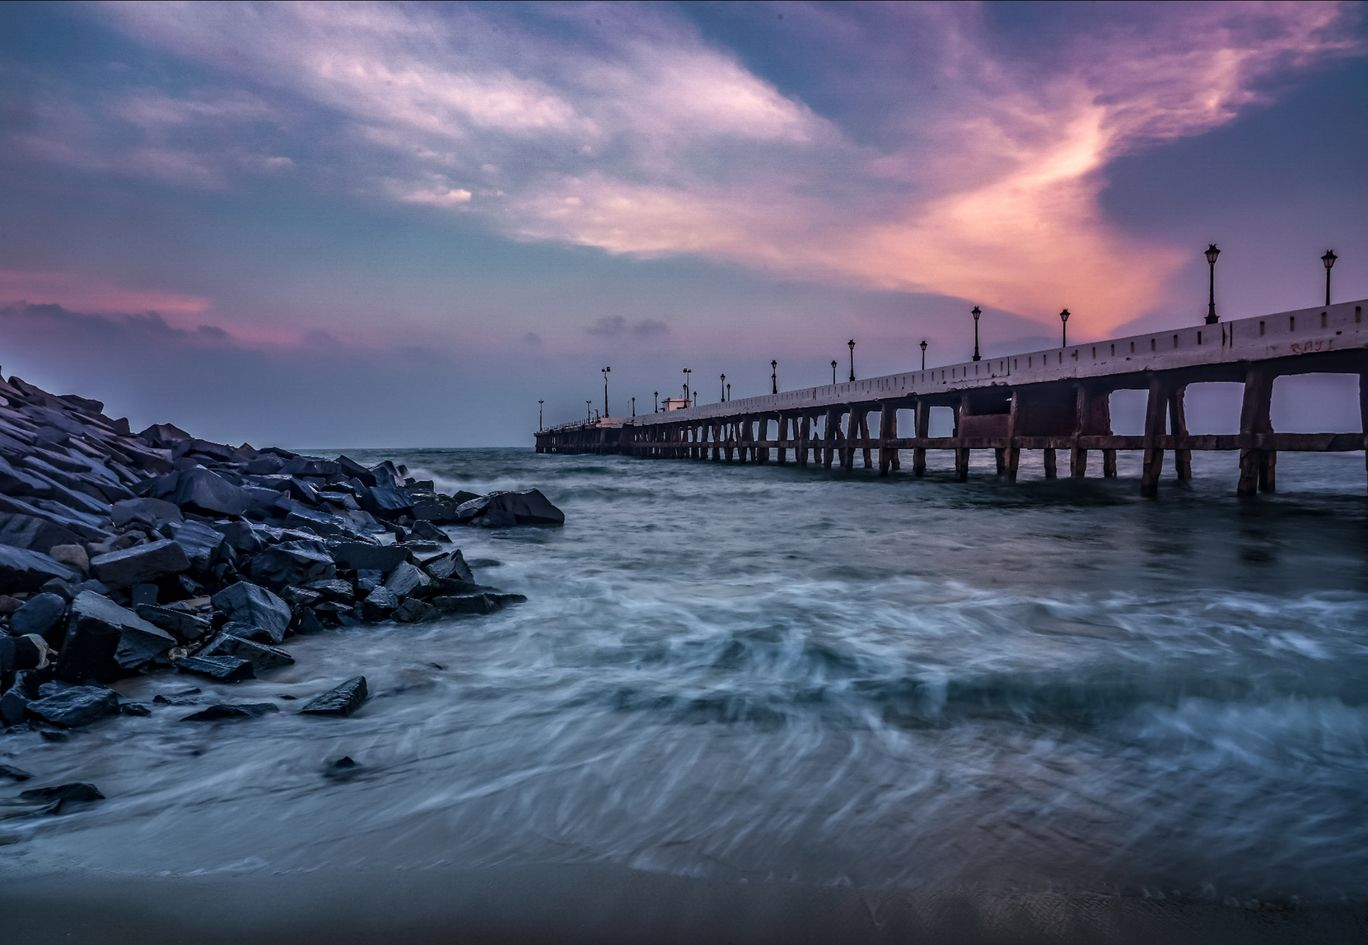 Photo of Promenade Beach By Siddhant S Soni